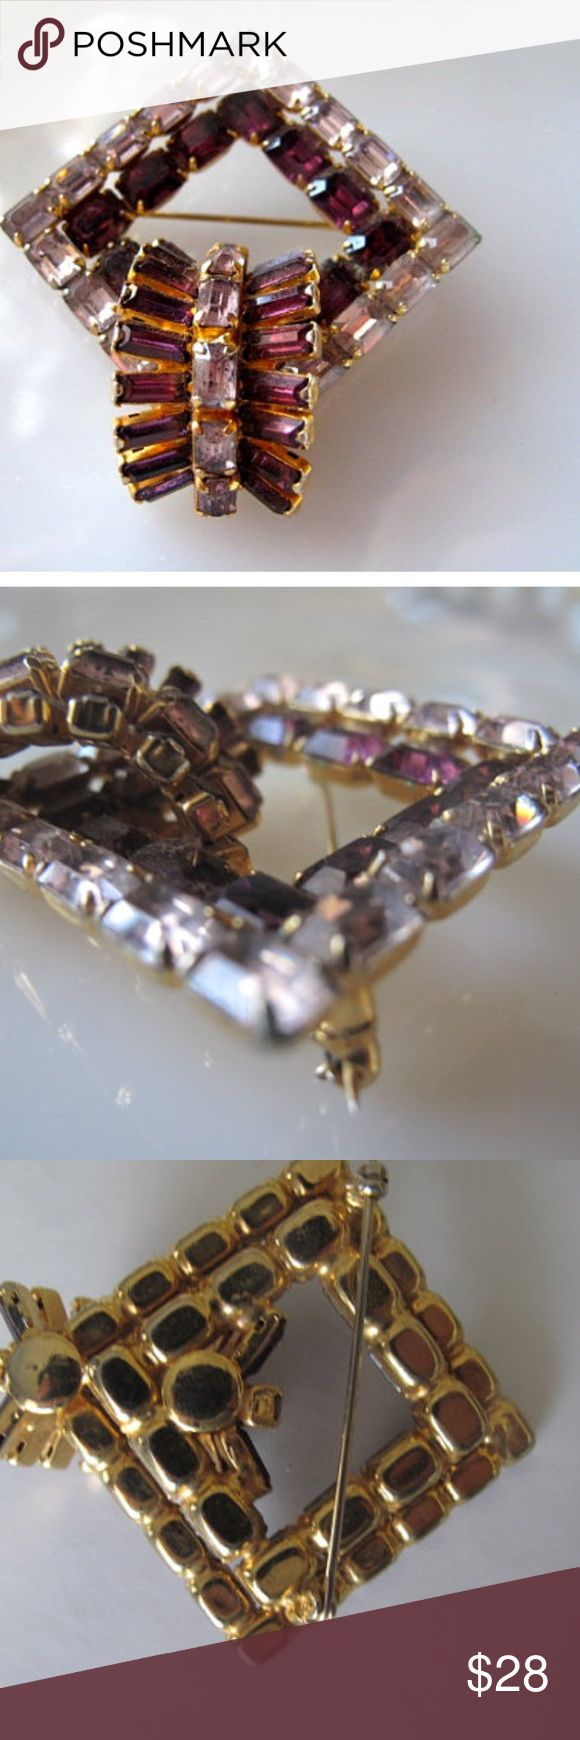 Mid Century Amethyst Rhinestone Brooch This unsigned beauty features lovely baguette prong set rhinestones in amethyst and clear. The setting is diamond shaped, or could be square.     One section in the corner has stones that are arranged in a three dimensional arc.     There is some darkening of the clear stones as one might expect from a brooch this age, but there is still plenty of bling left!    The brooch is very unusual distinctive. I haven't found another one like it. Vintage Jewelry…